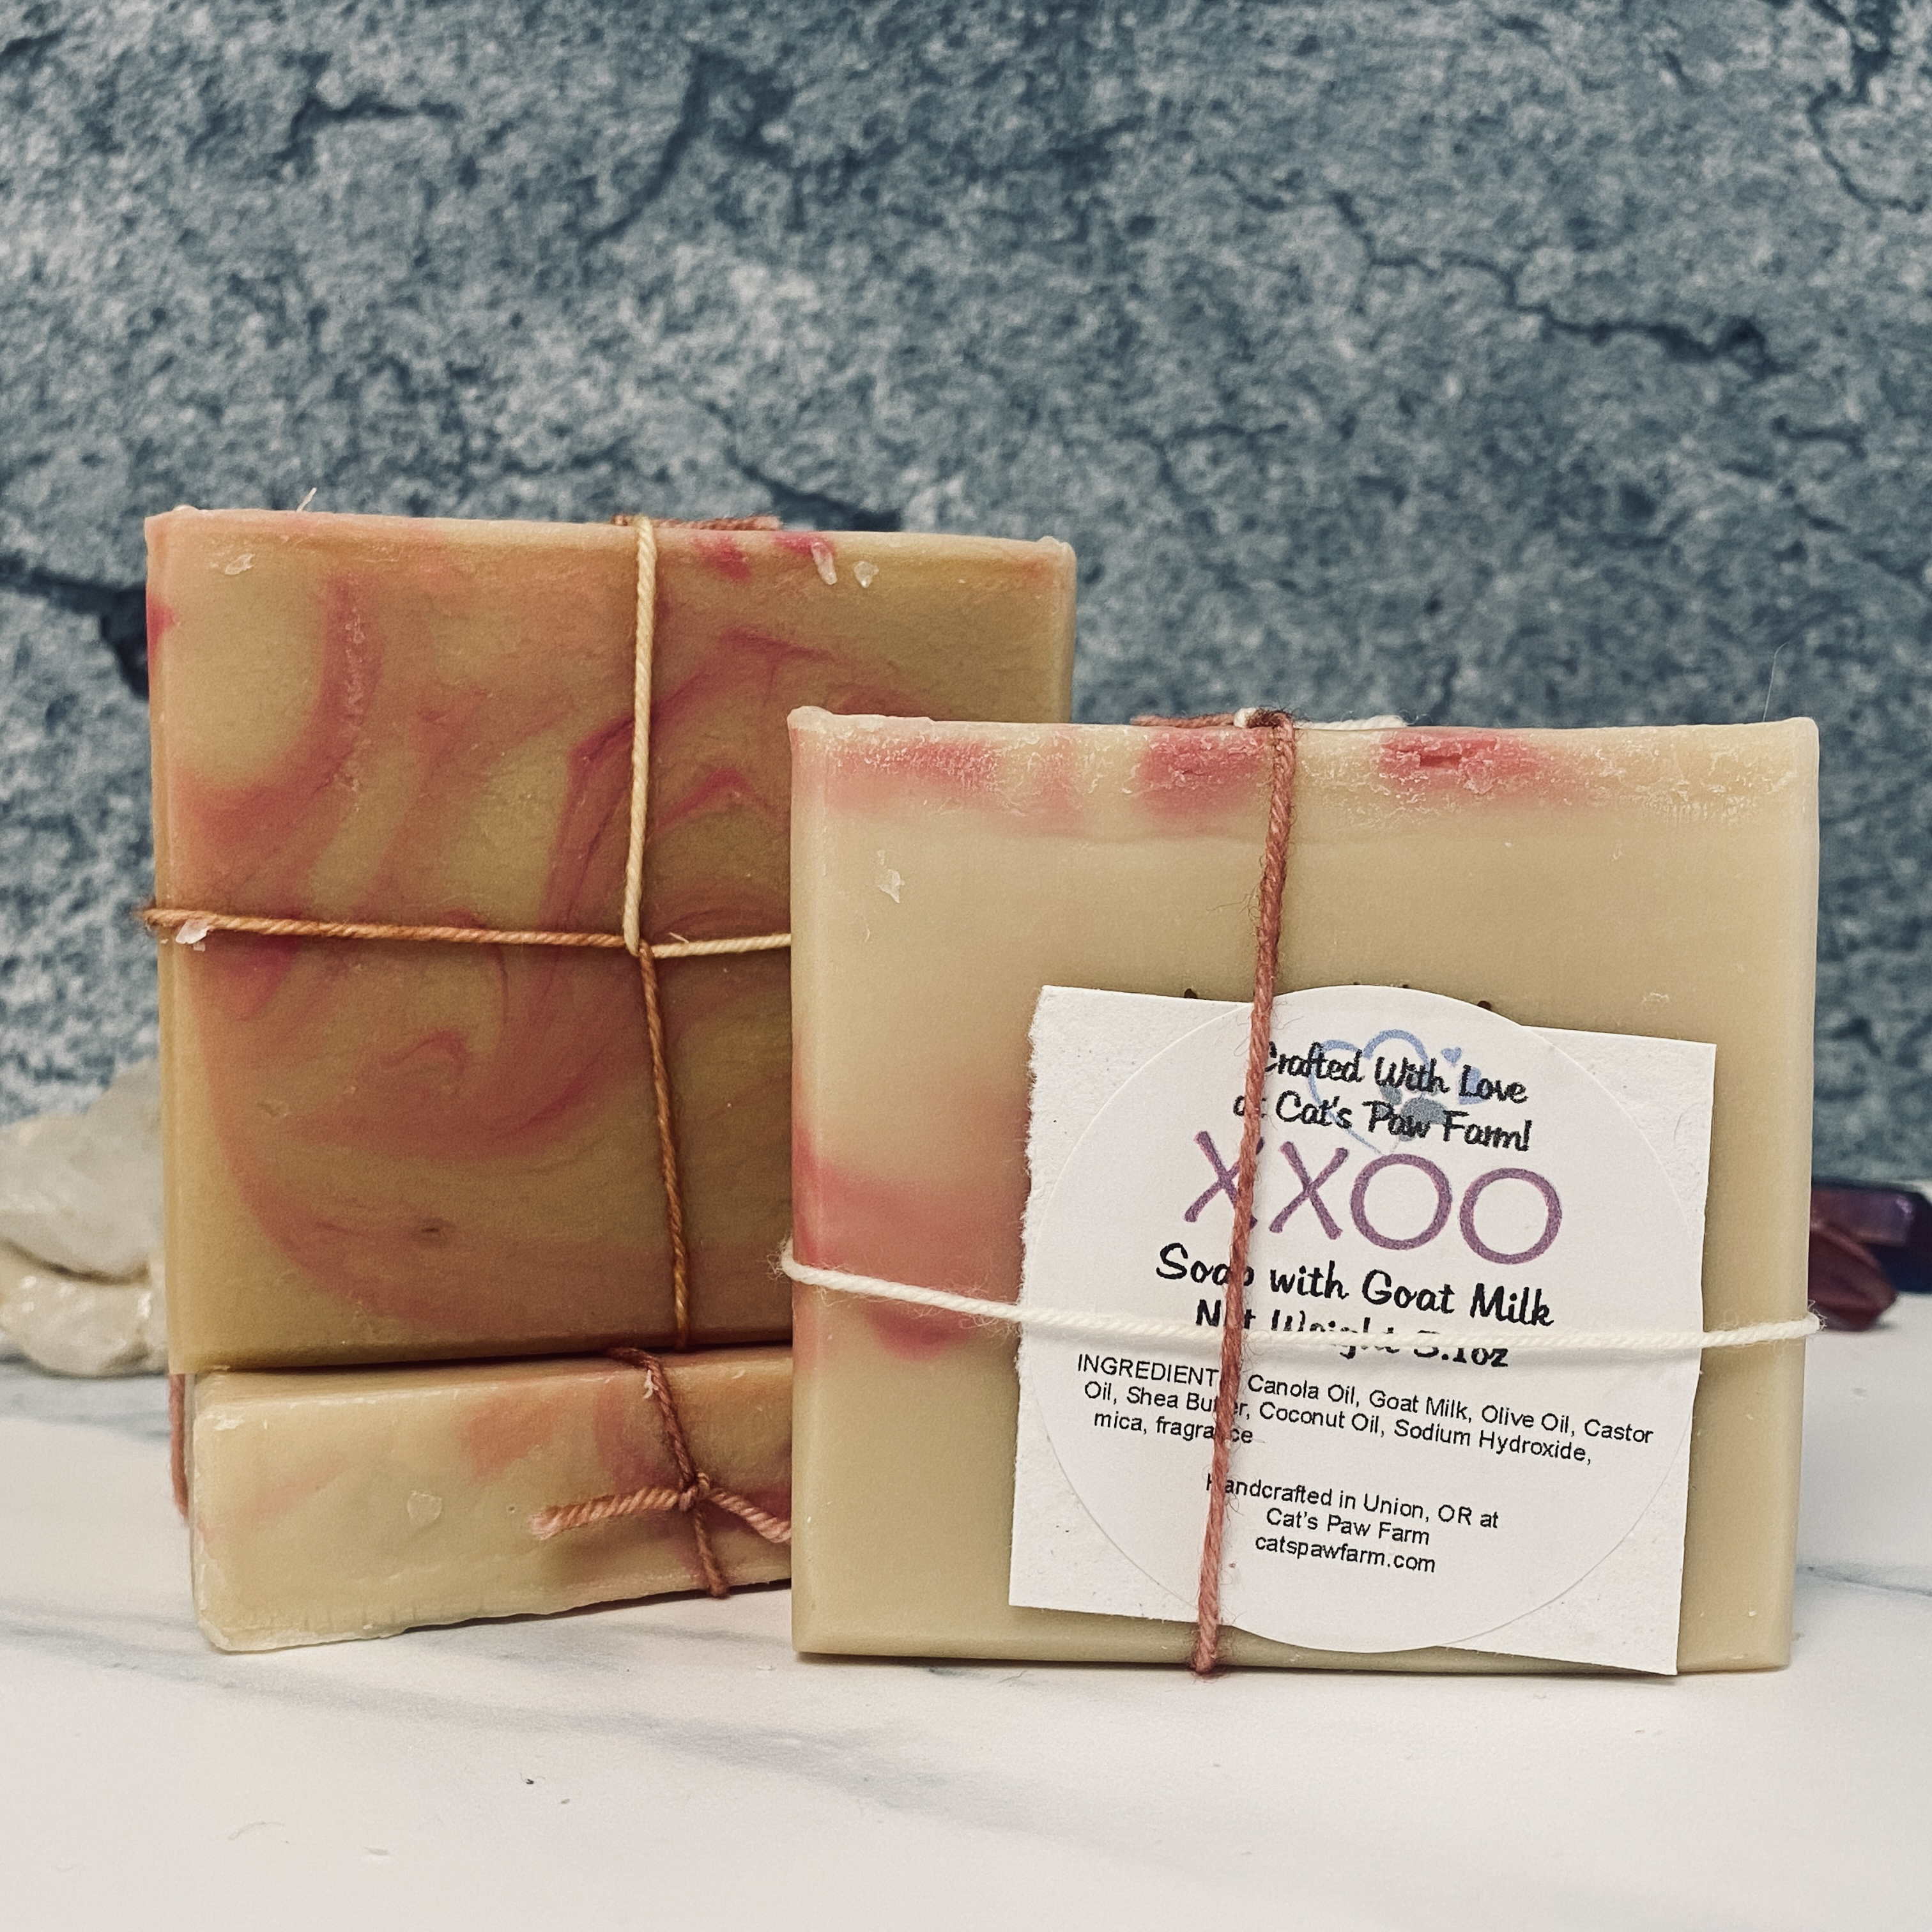 XXOO Scented Soap with Goat Milk